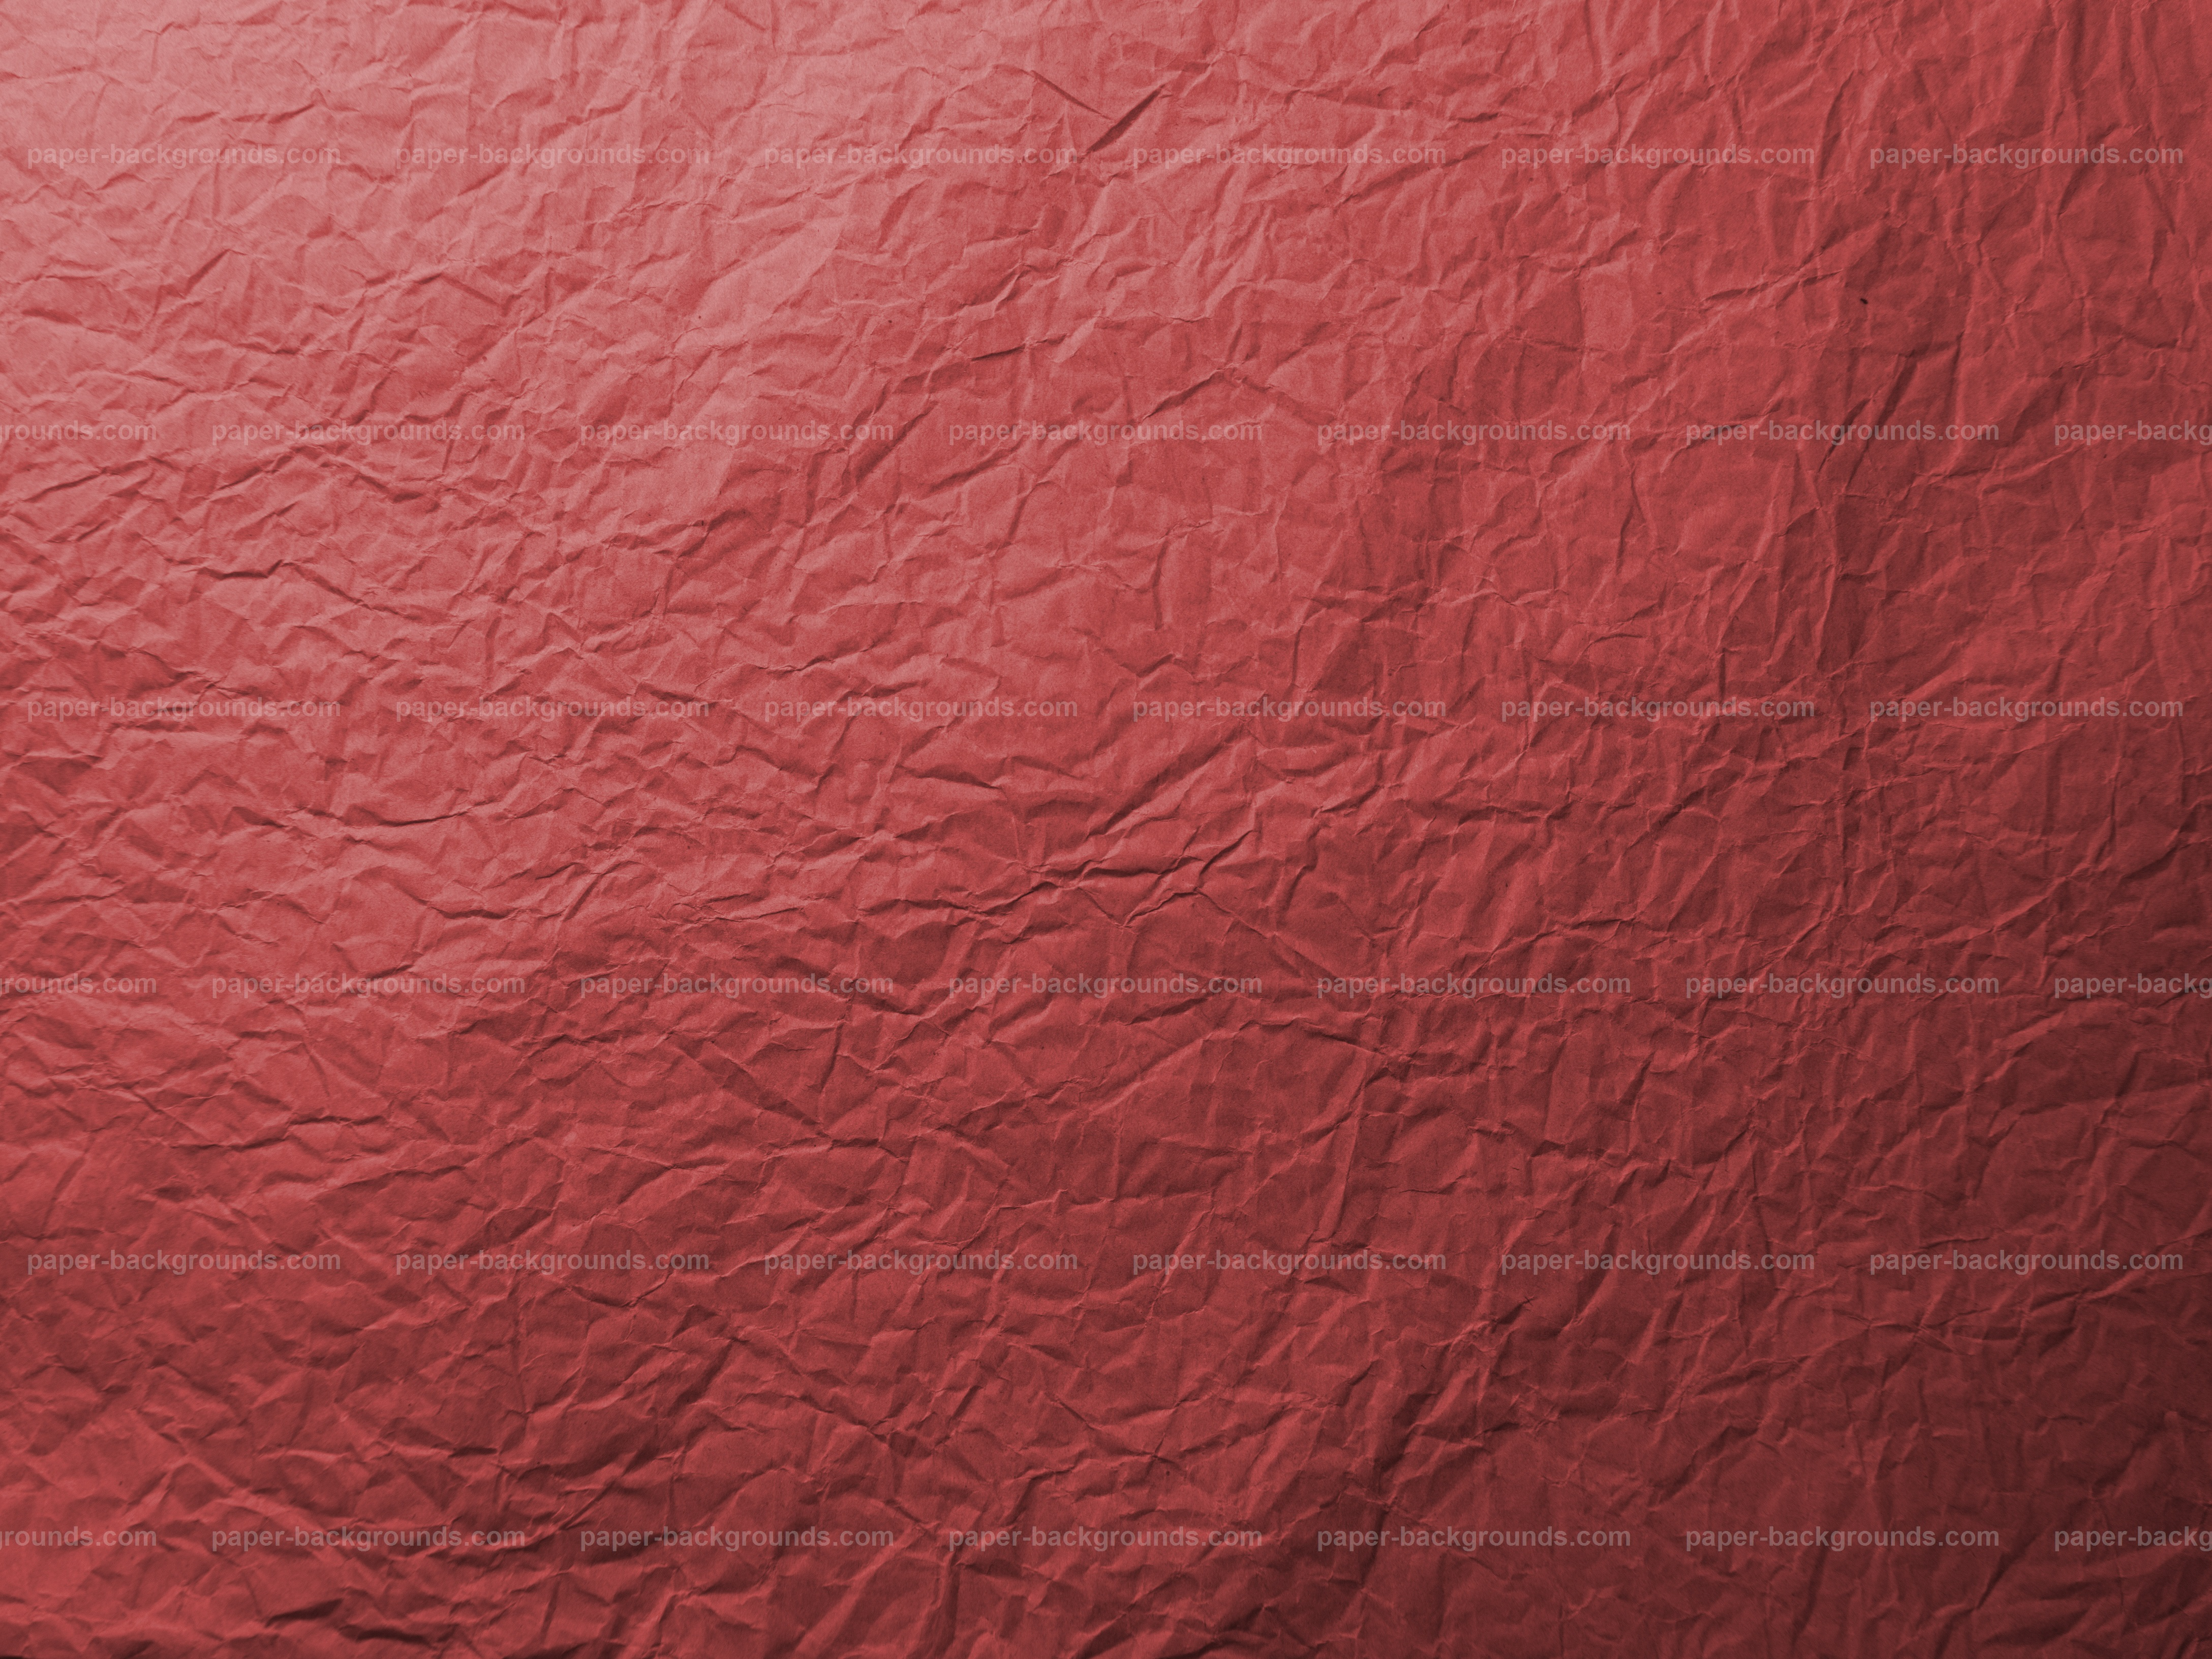 Paper Backgrounds | Red Wrinkled Paper Texture